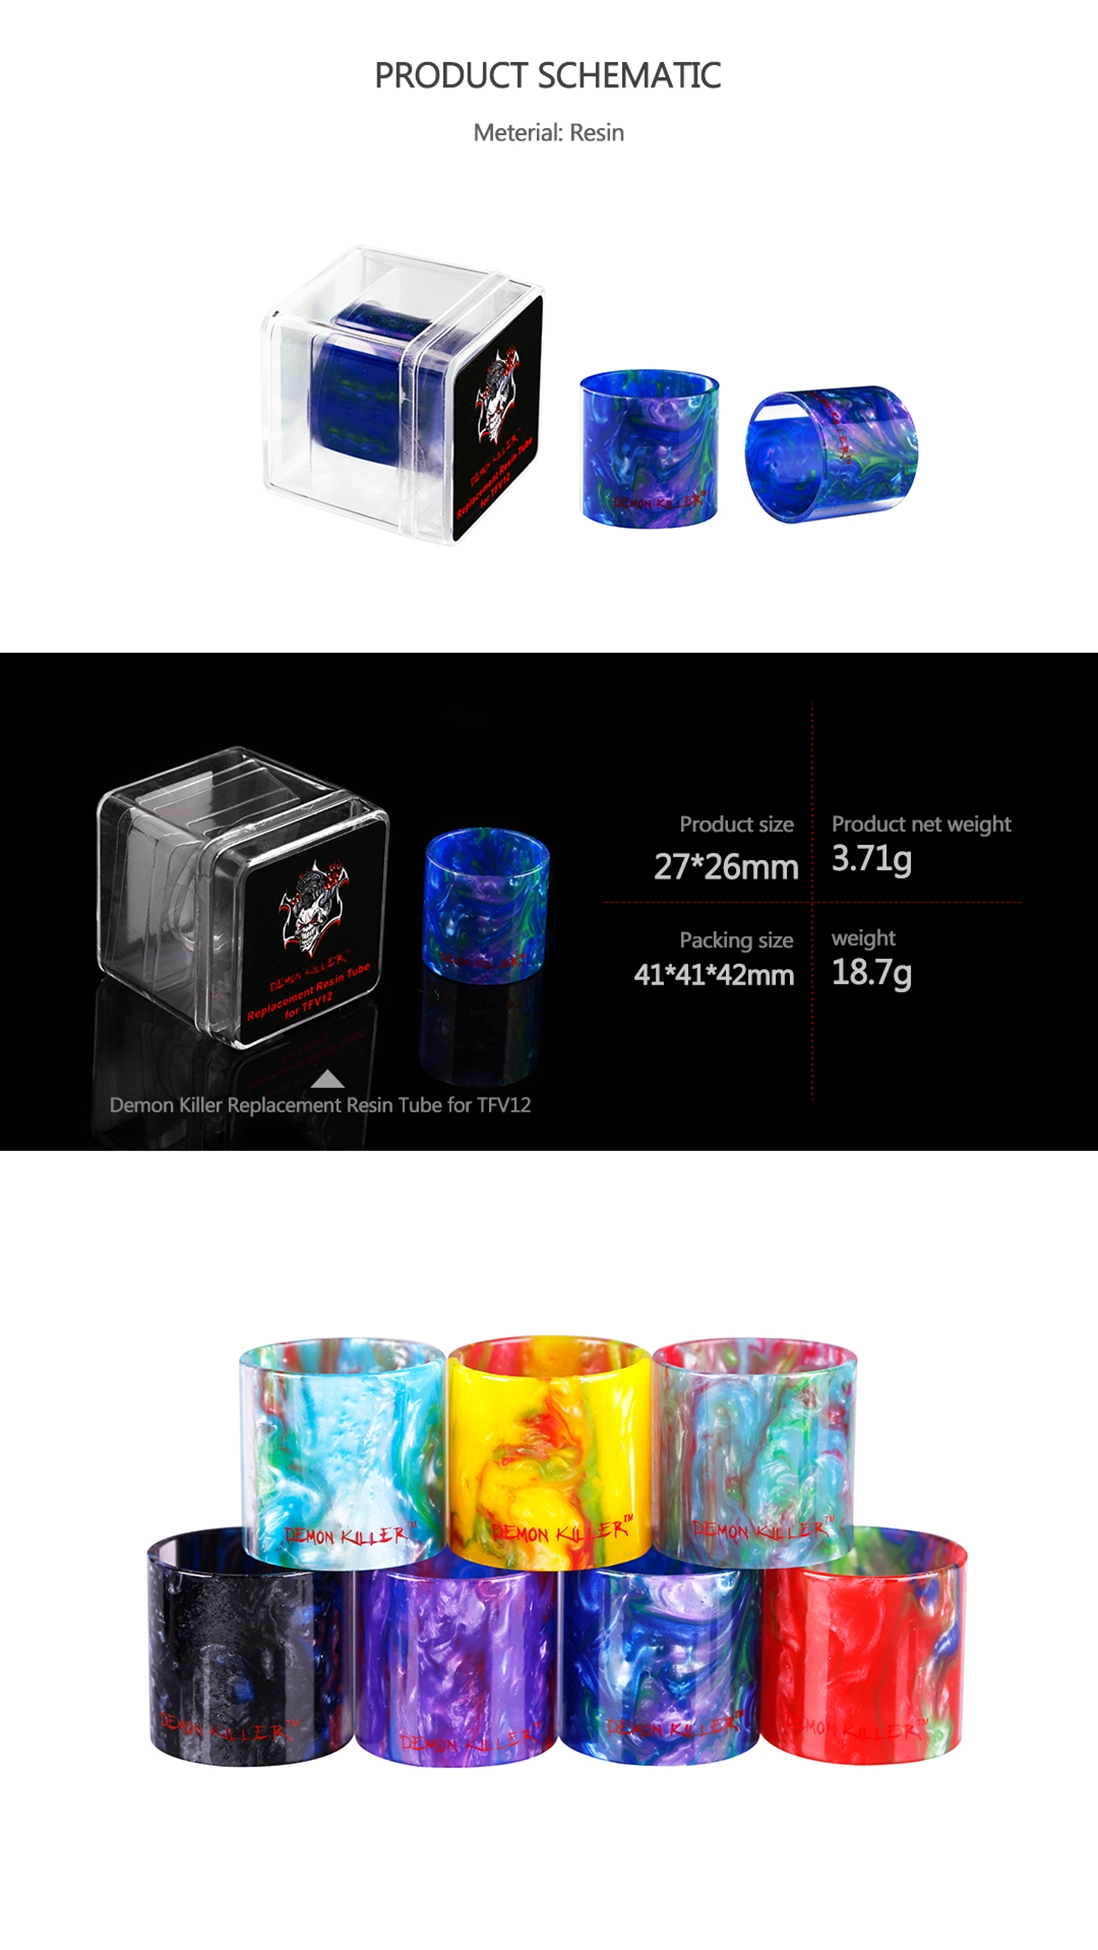 Demon Killer TFV12 Replacement Resin Tube